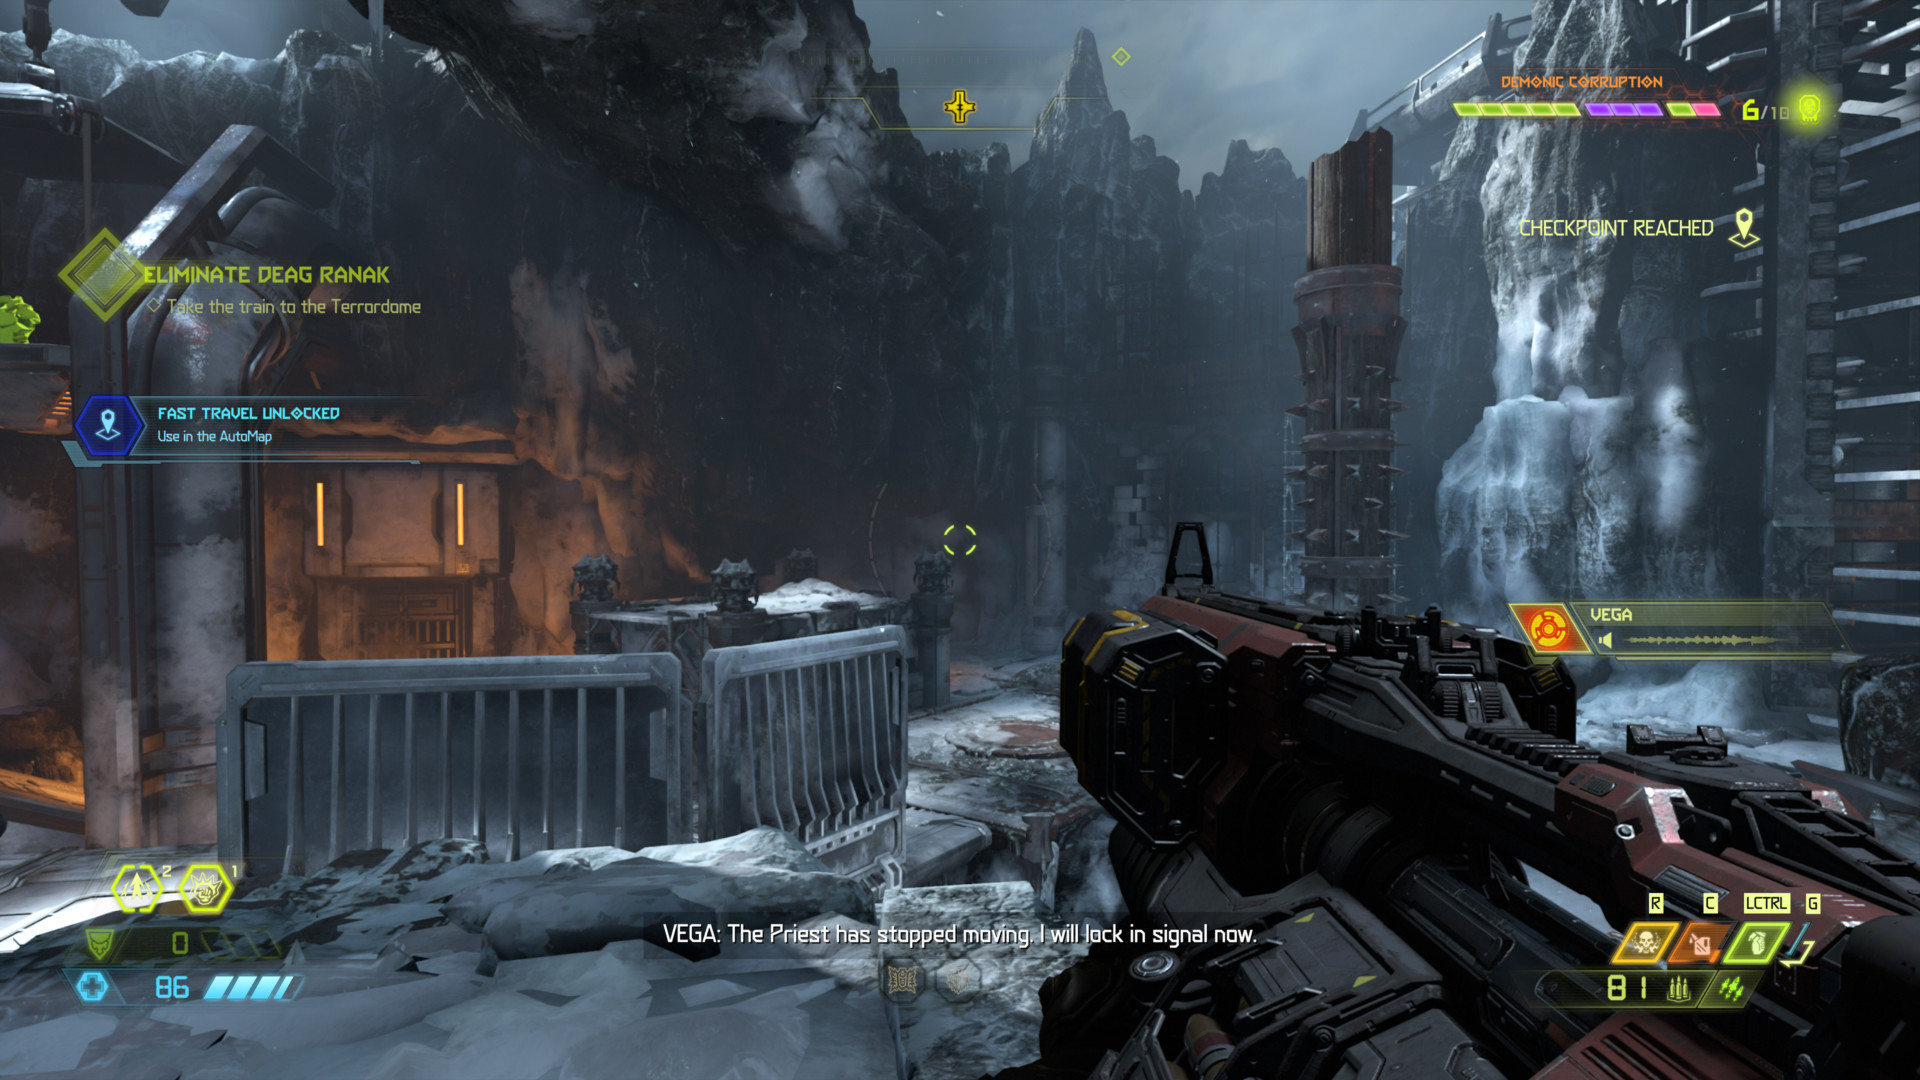 Dialogue screenshot of Doom Eternal video game interface.